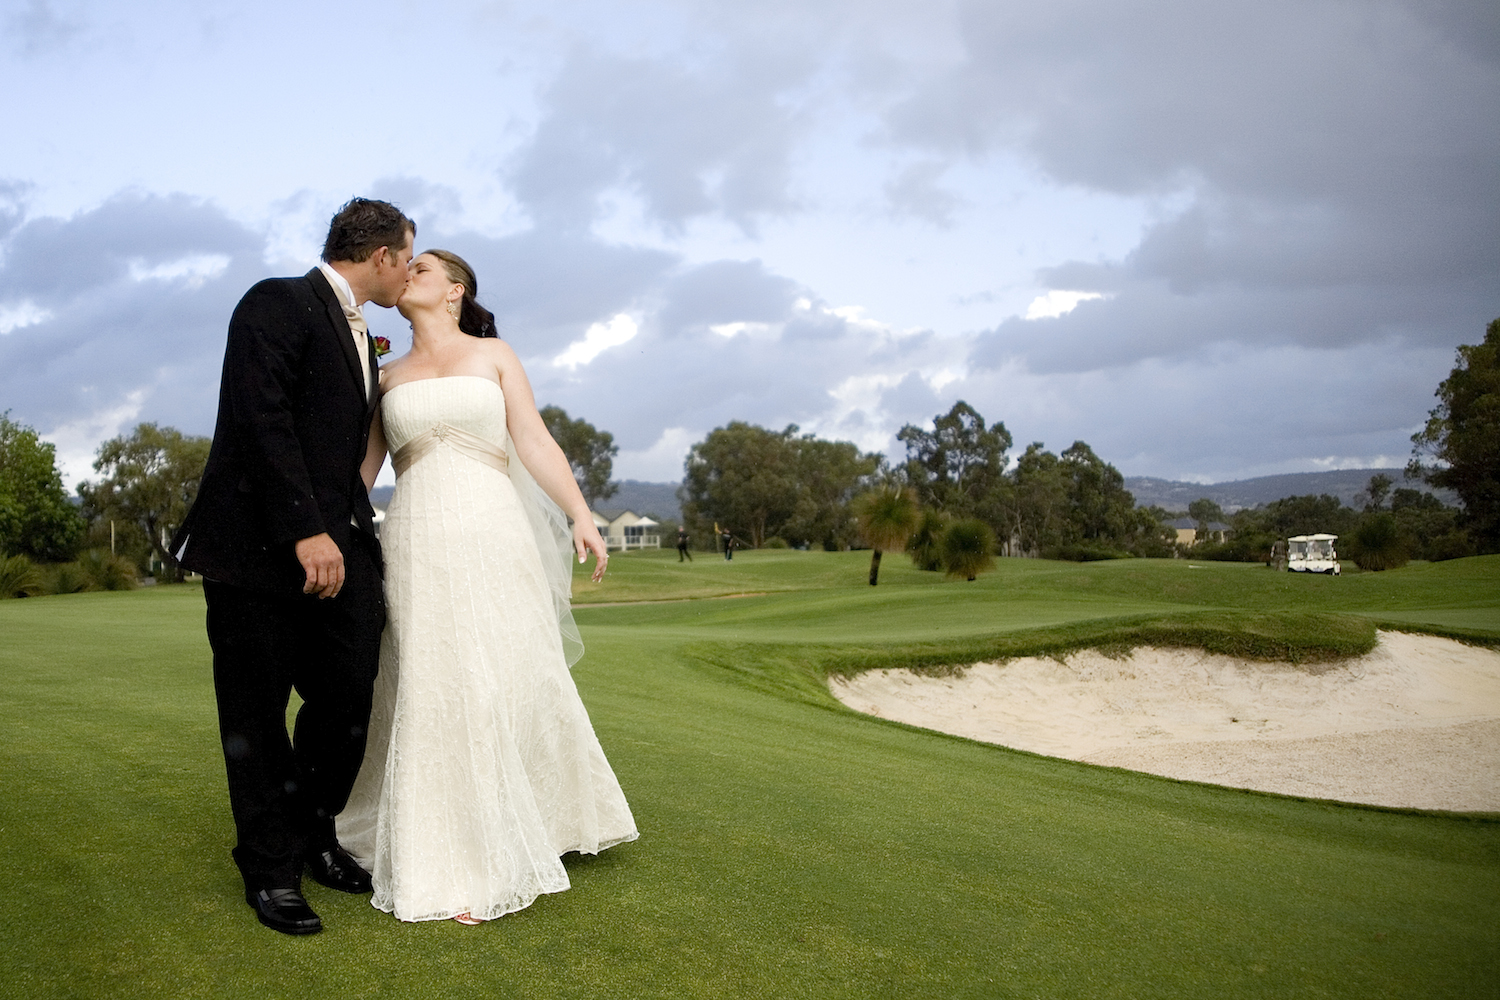 The wedding date online in Perth